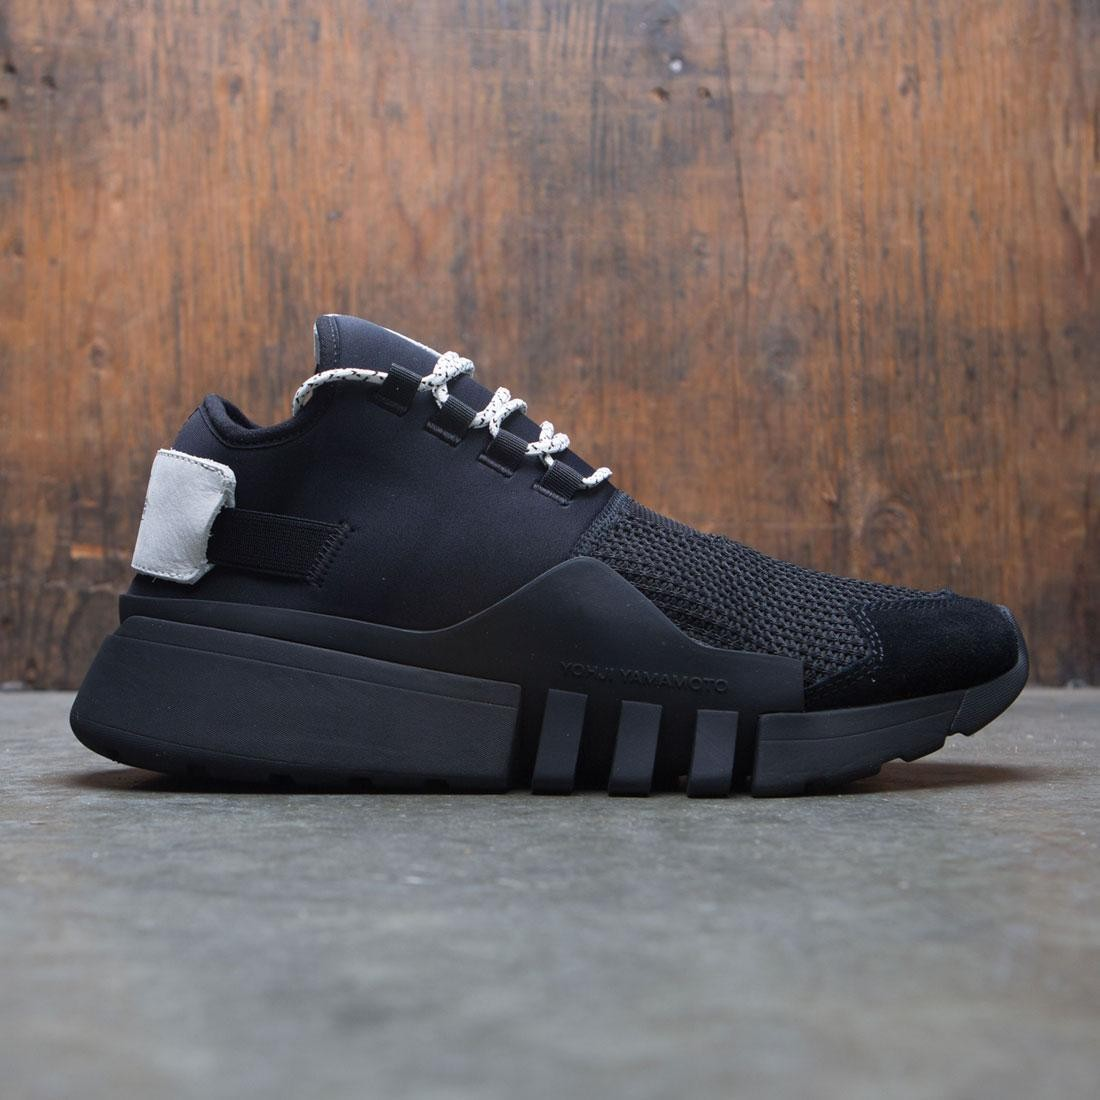 ca7c46bcae1b Adidas Y-3 Men Ayero black core black white